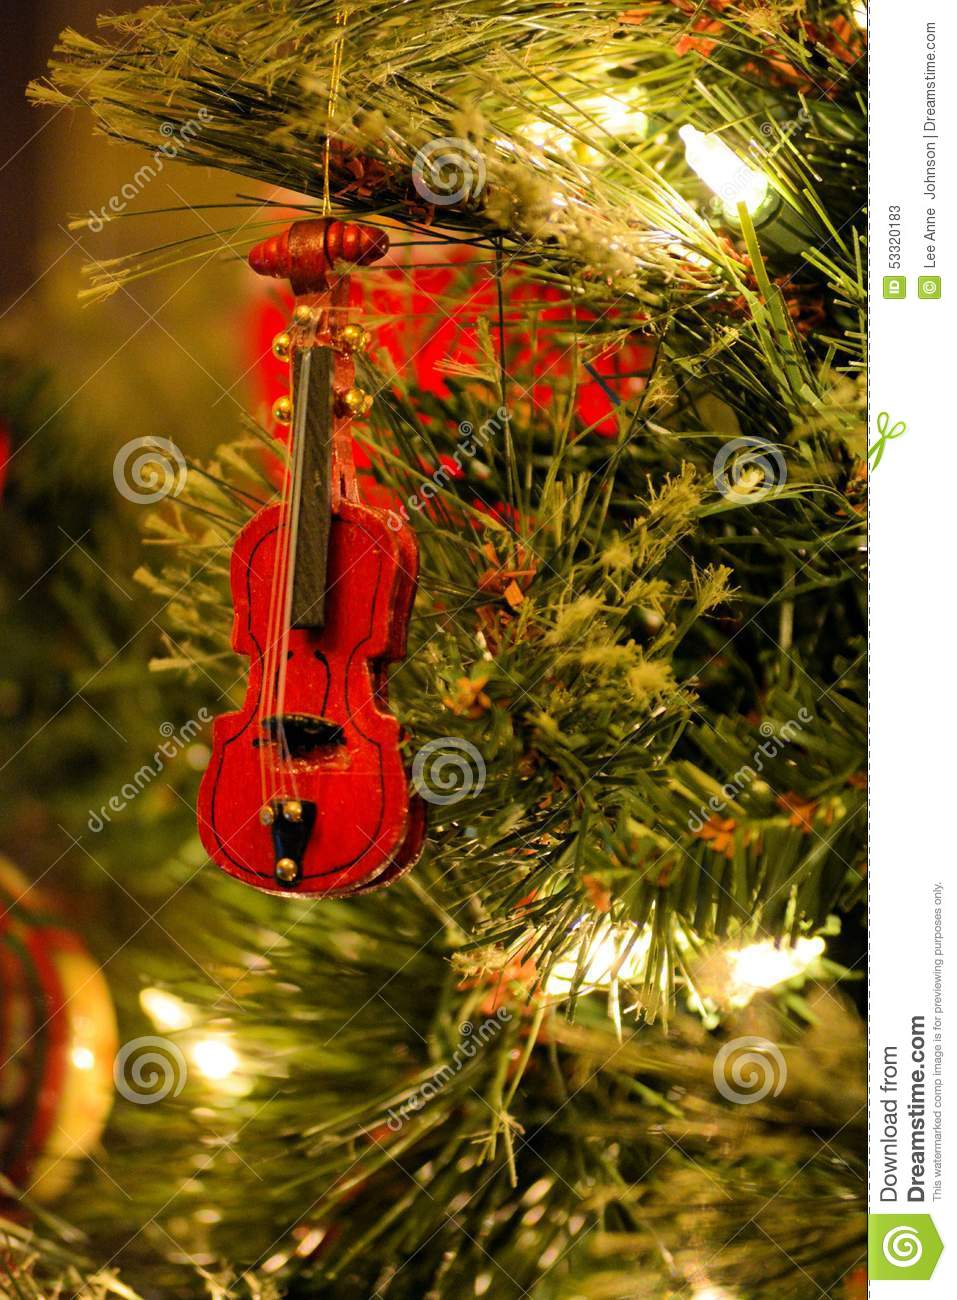 Violin christmas ornaments - Christmas Tree Ornament Red Violin Fiddle